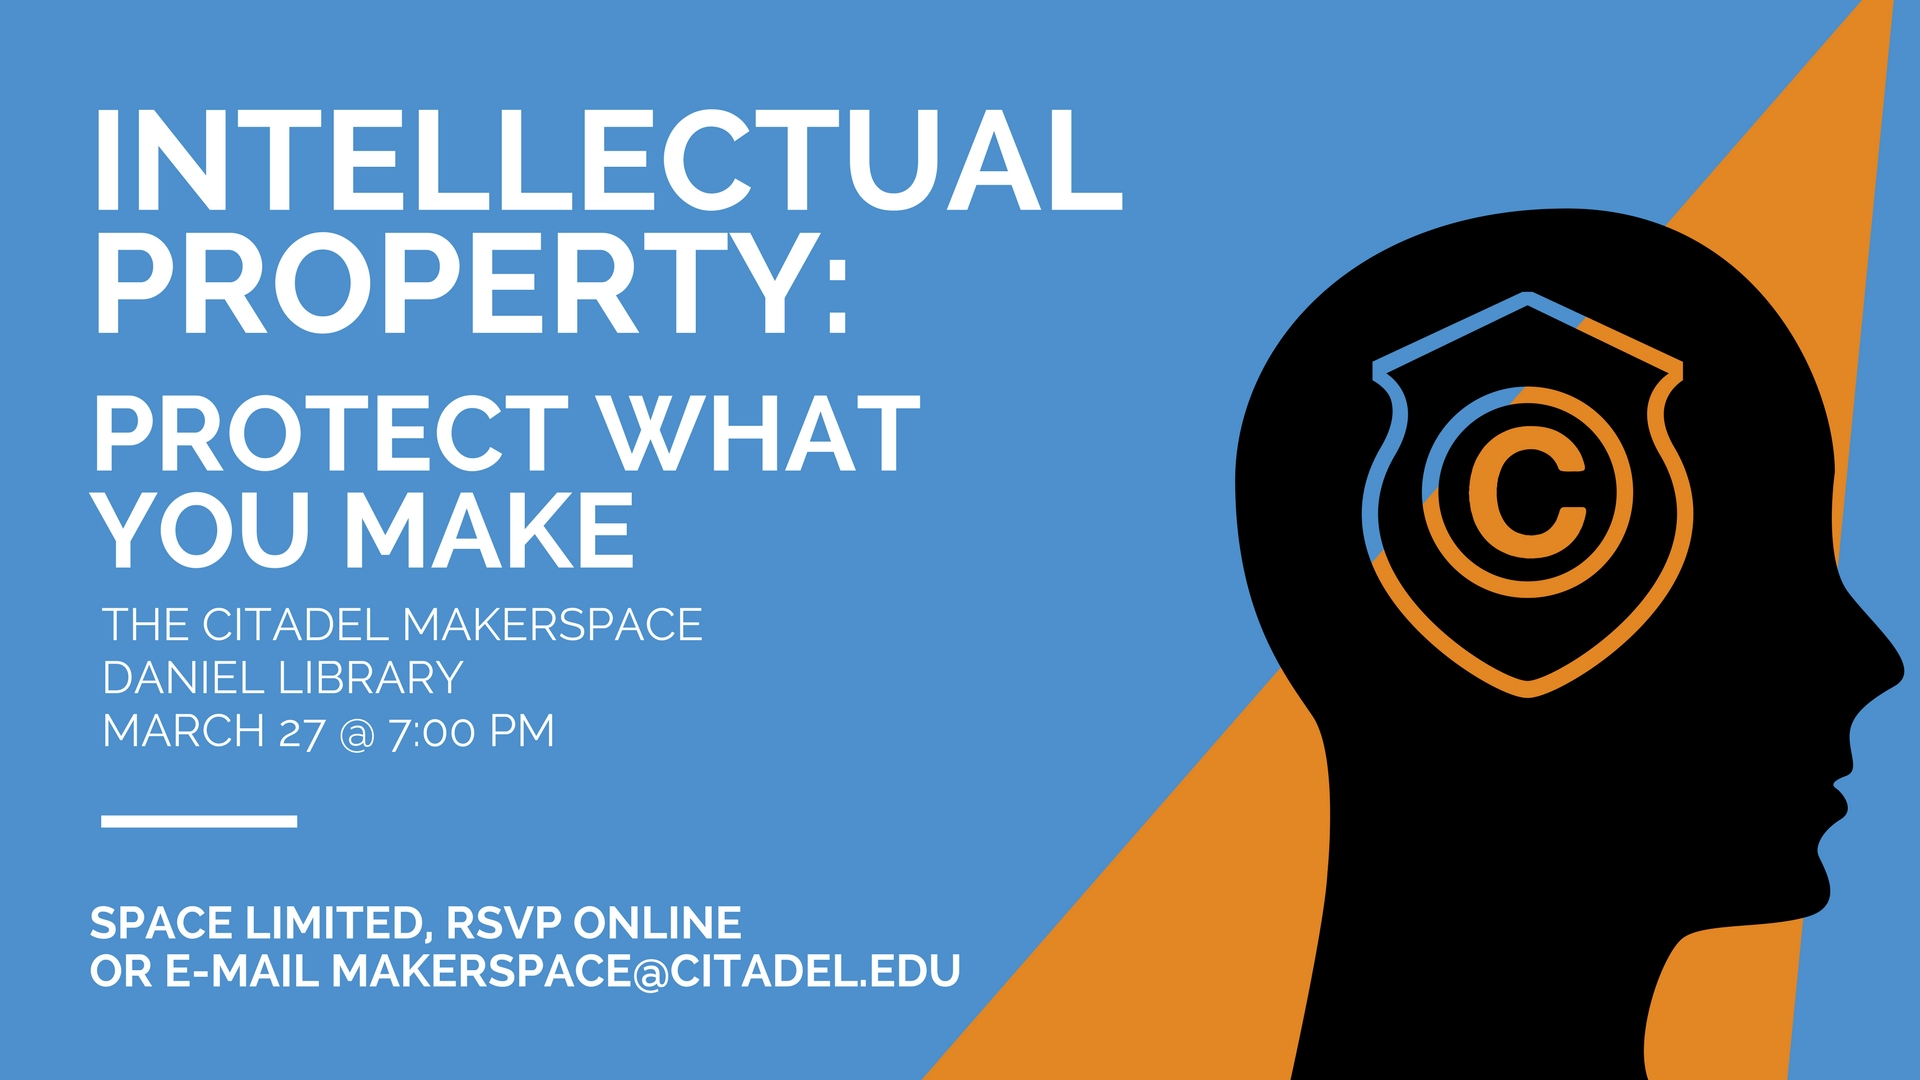 Makerspace Workshop: Intellectual Property: Protect What You Make